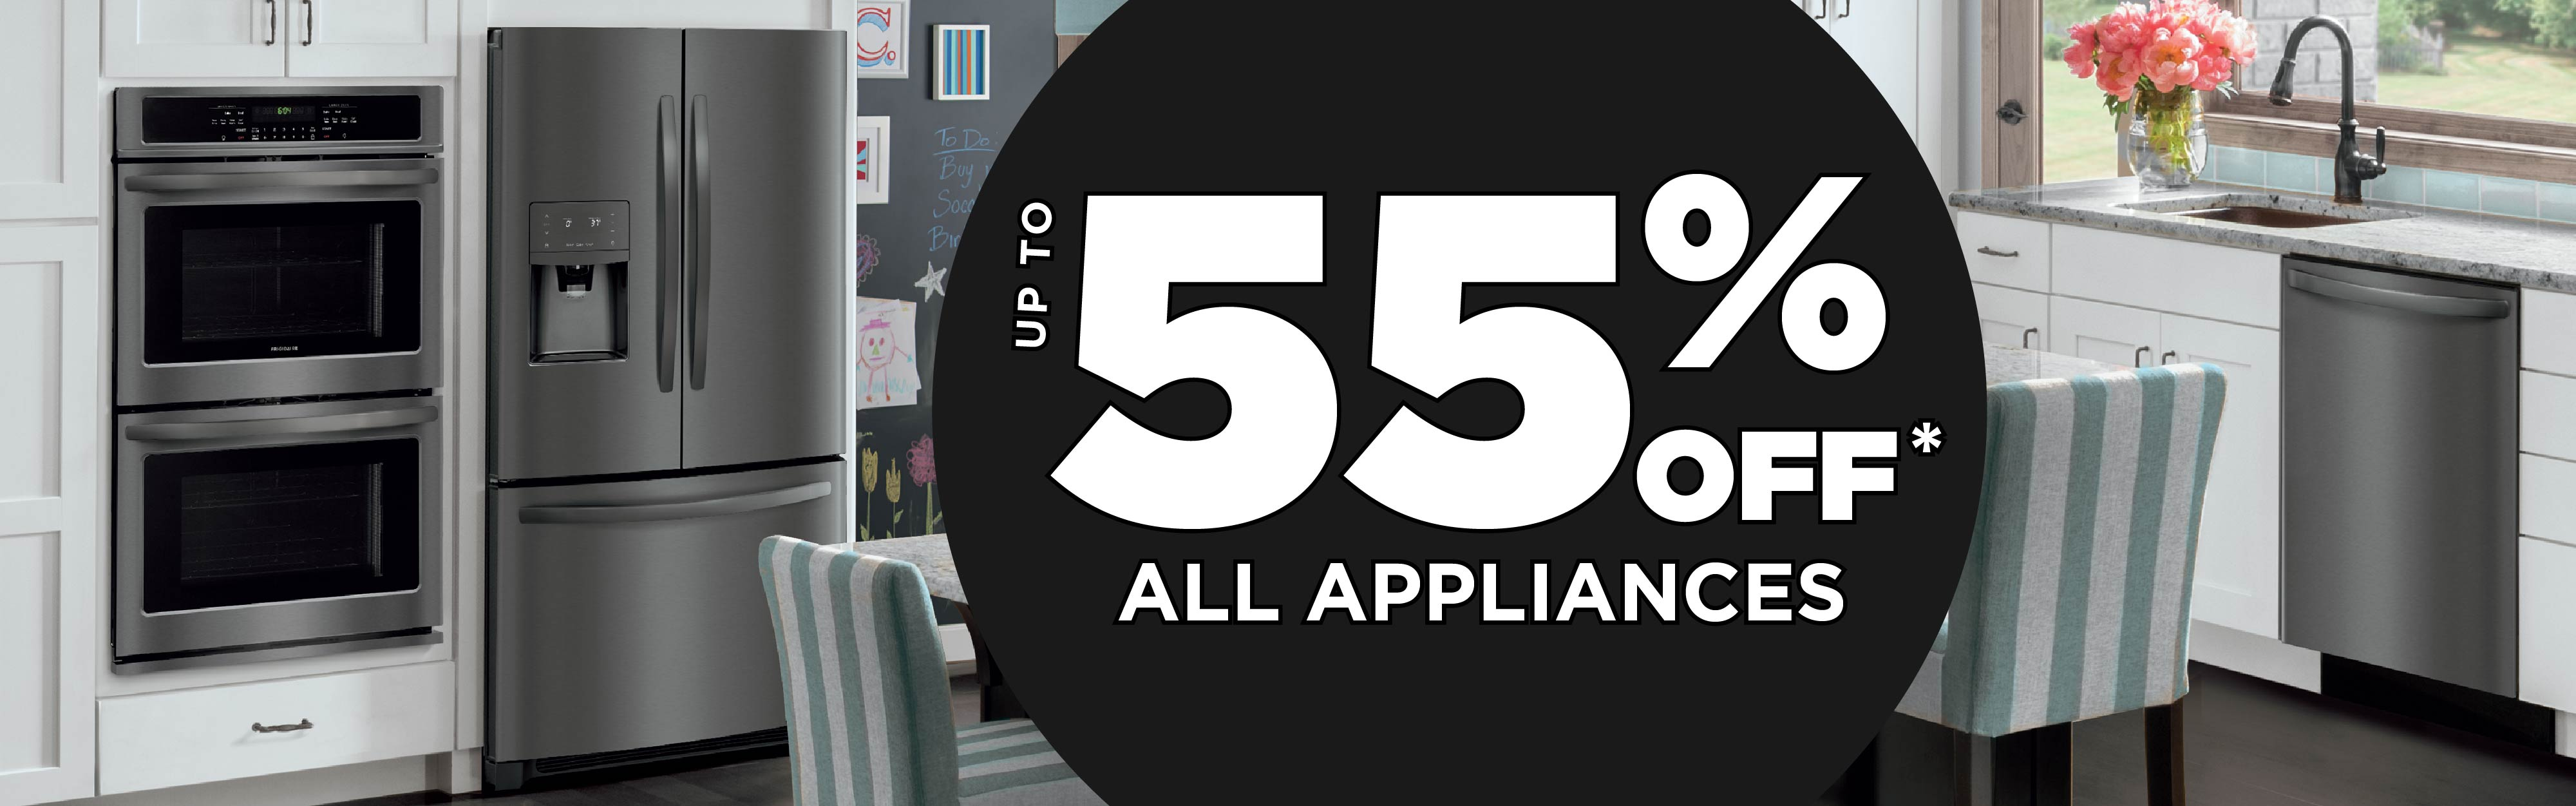 up to 55% Off All Appliances